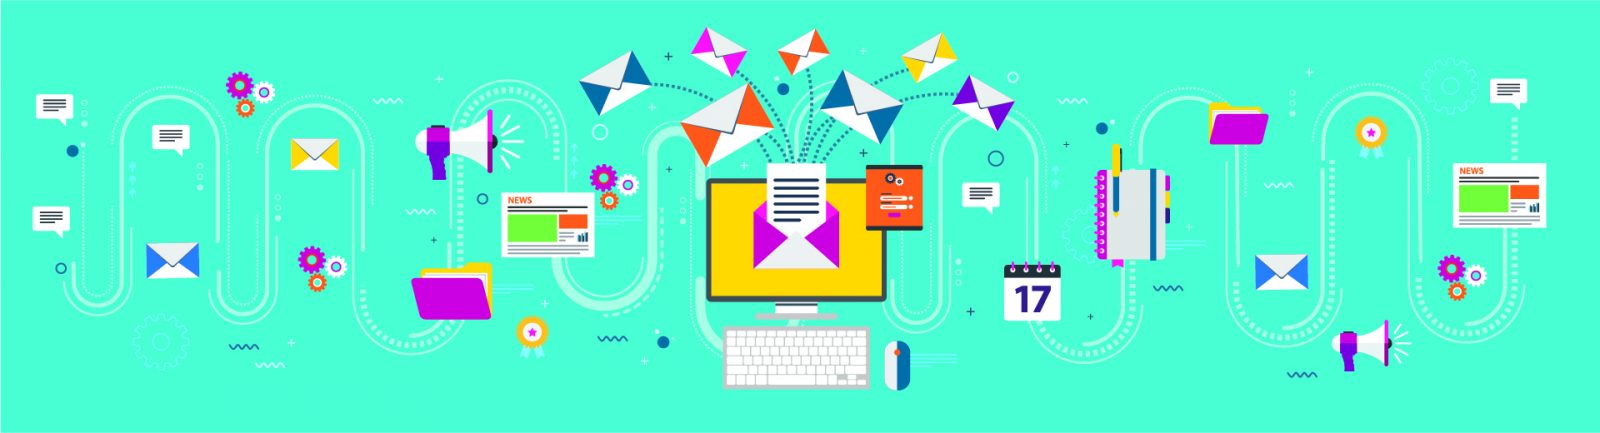 e-mail communication